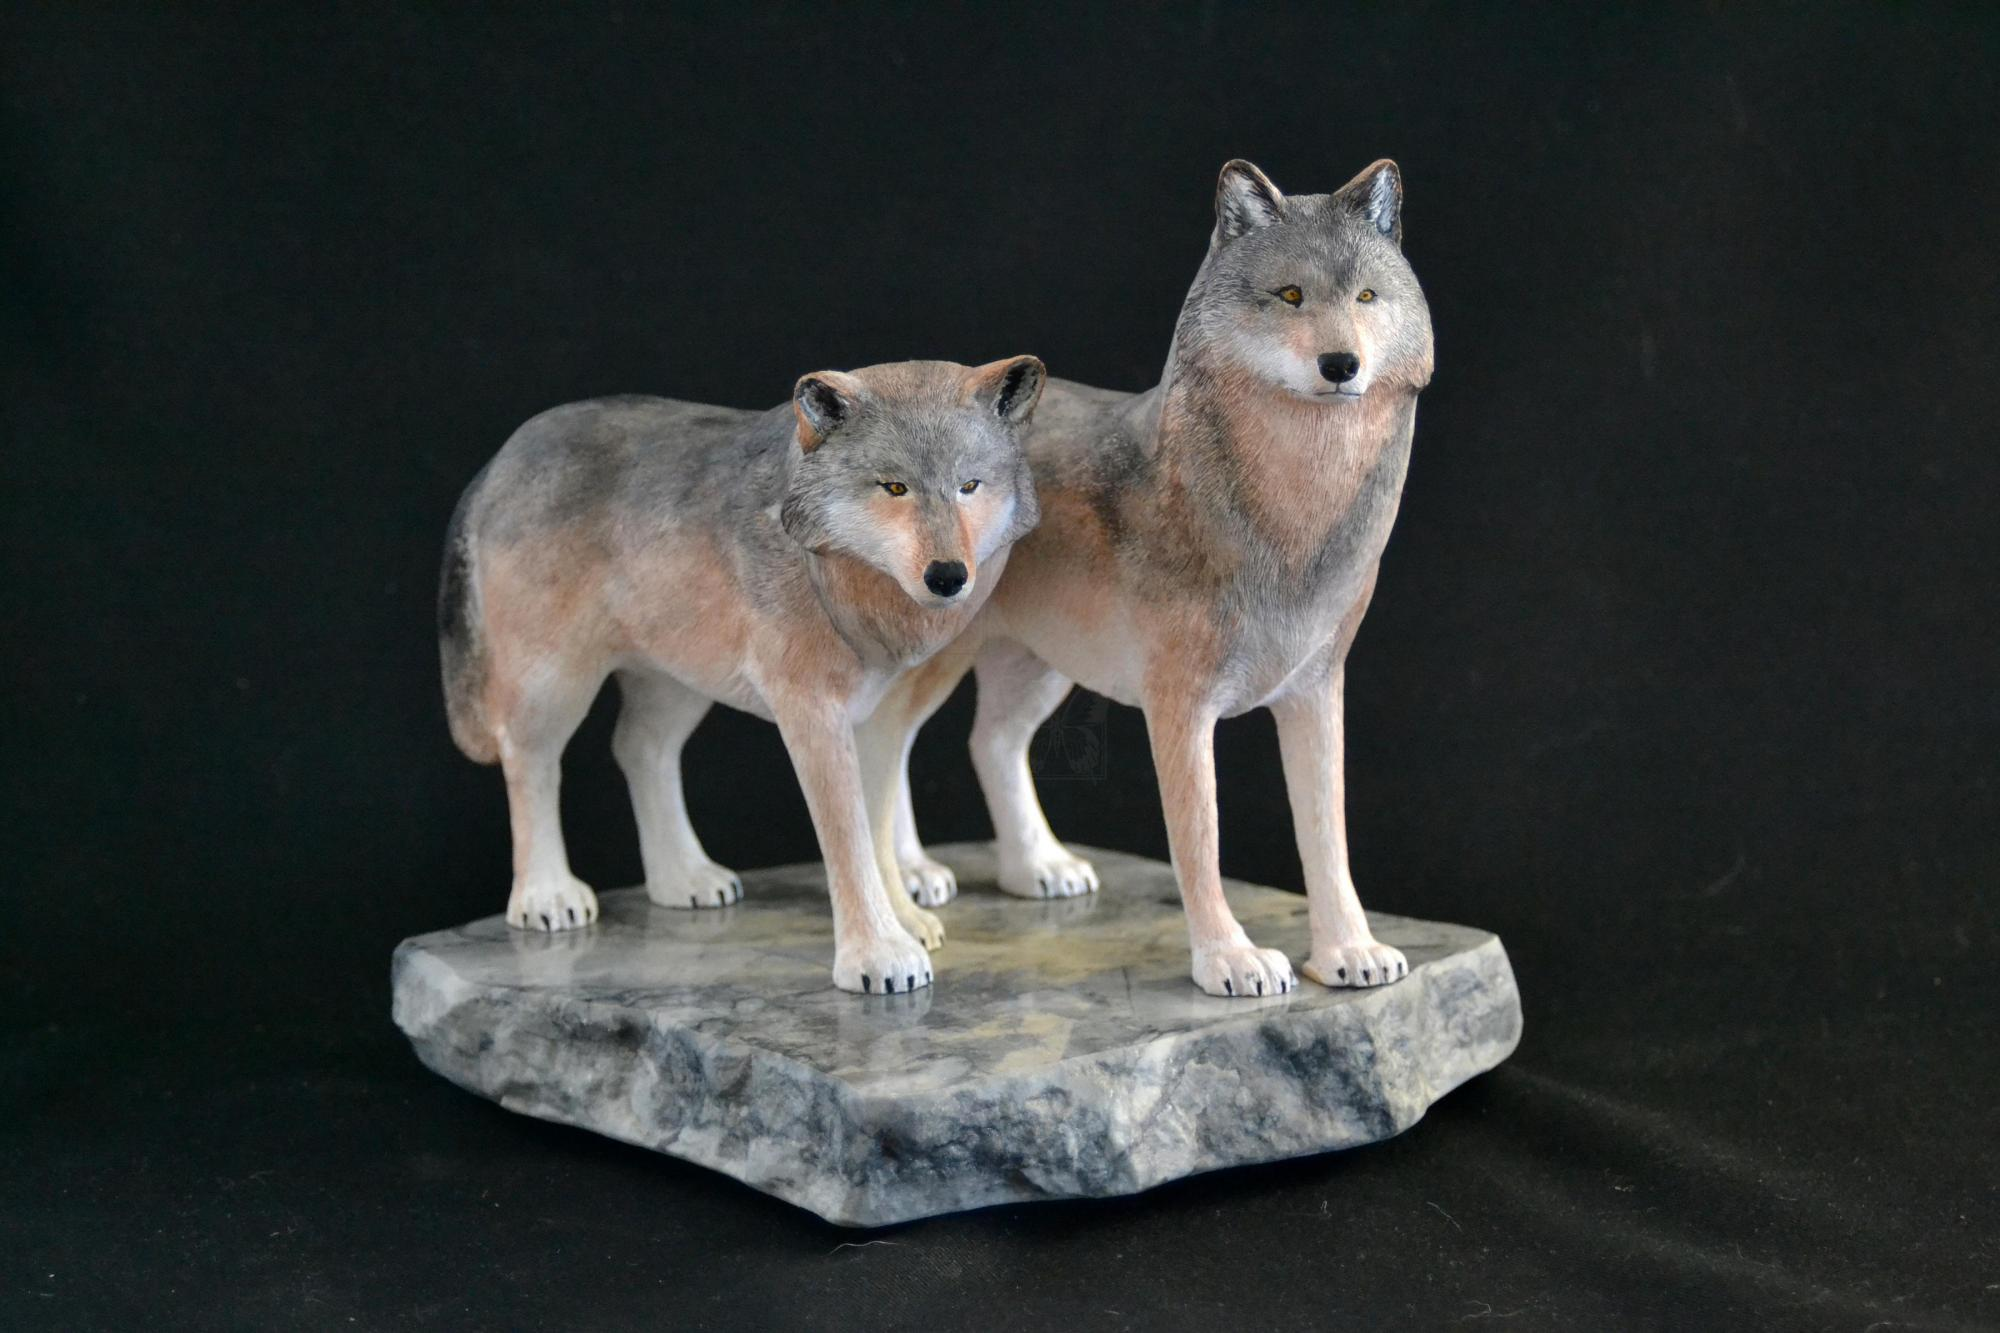 Paired For Life | Sculpture by David Bruce Johnson | Artists for Conservation 2021